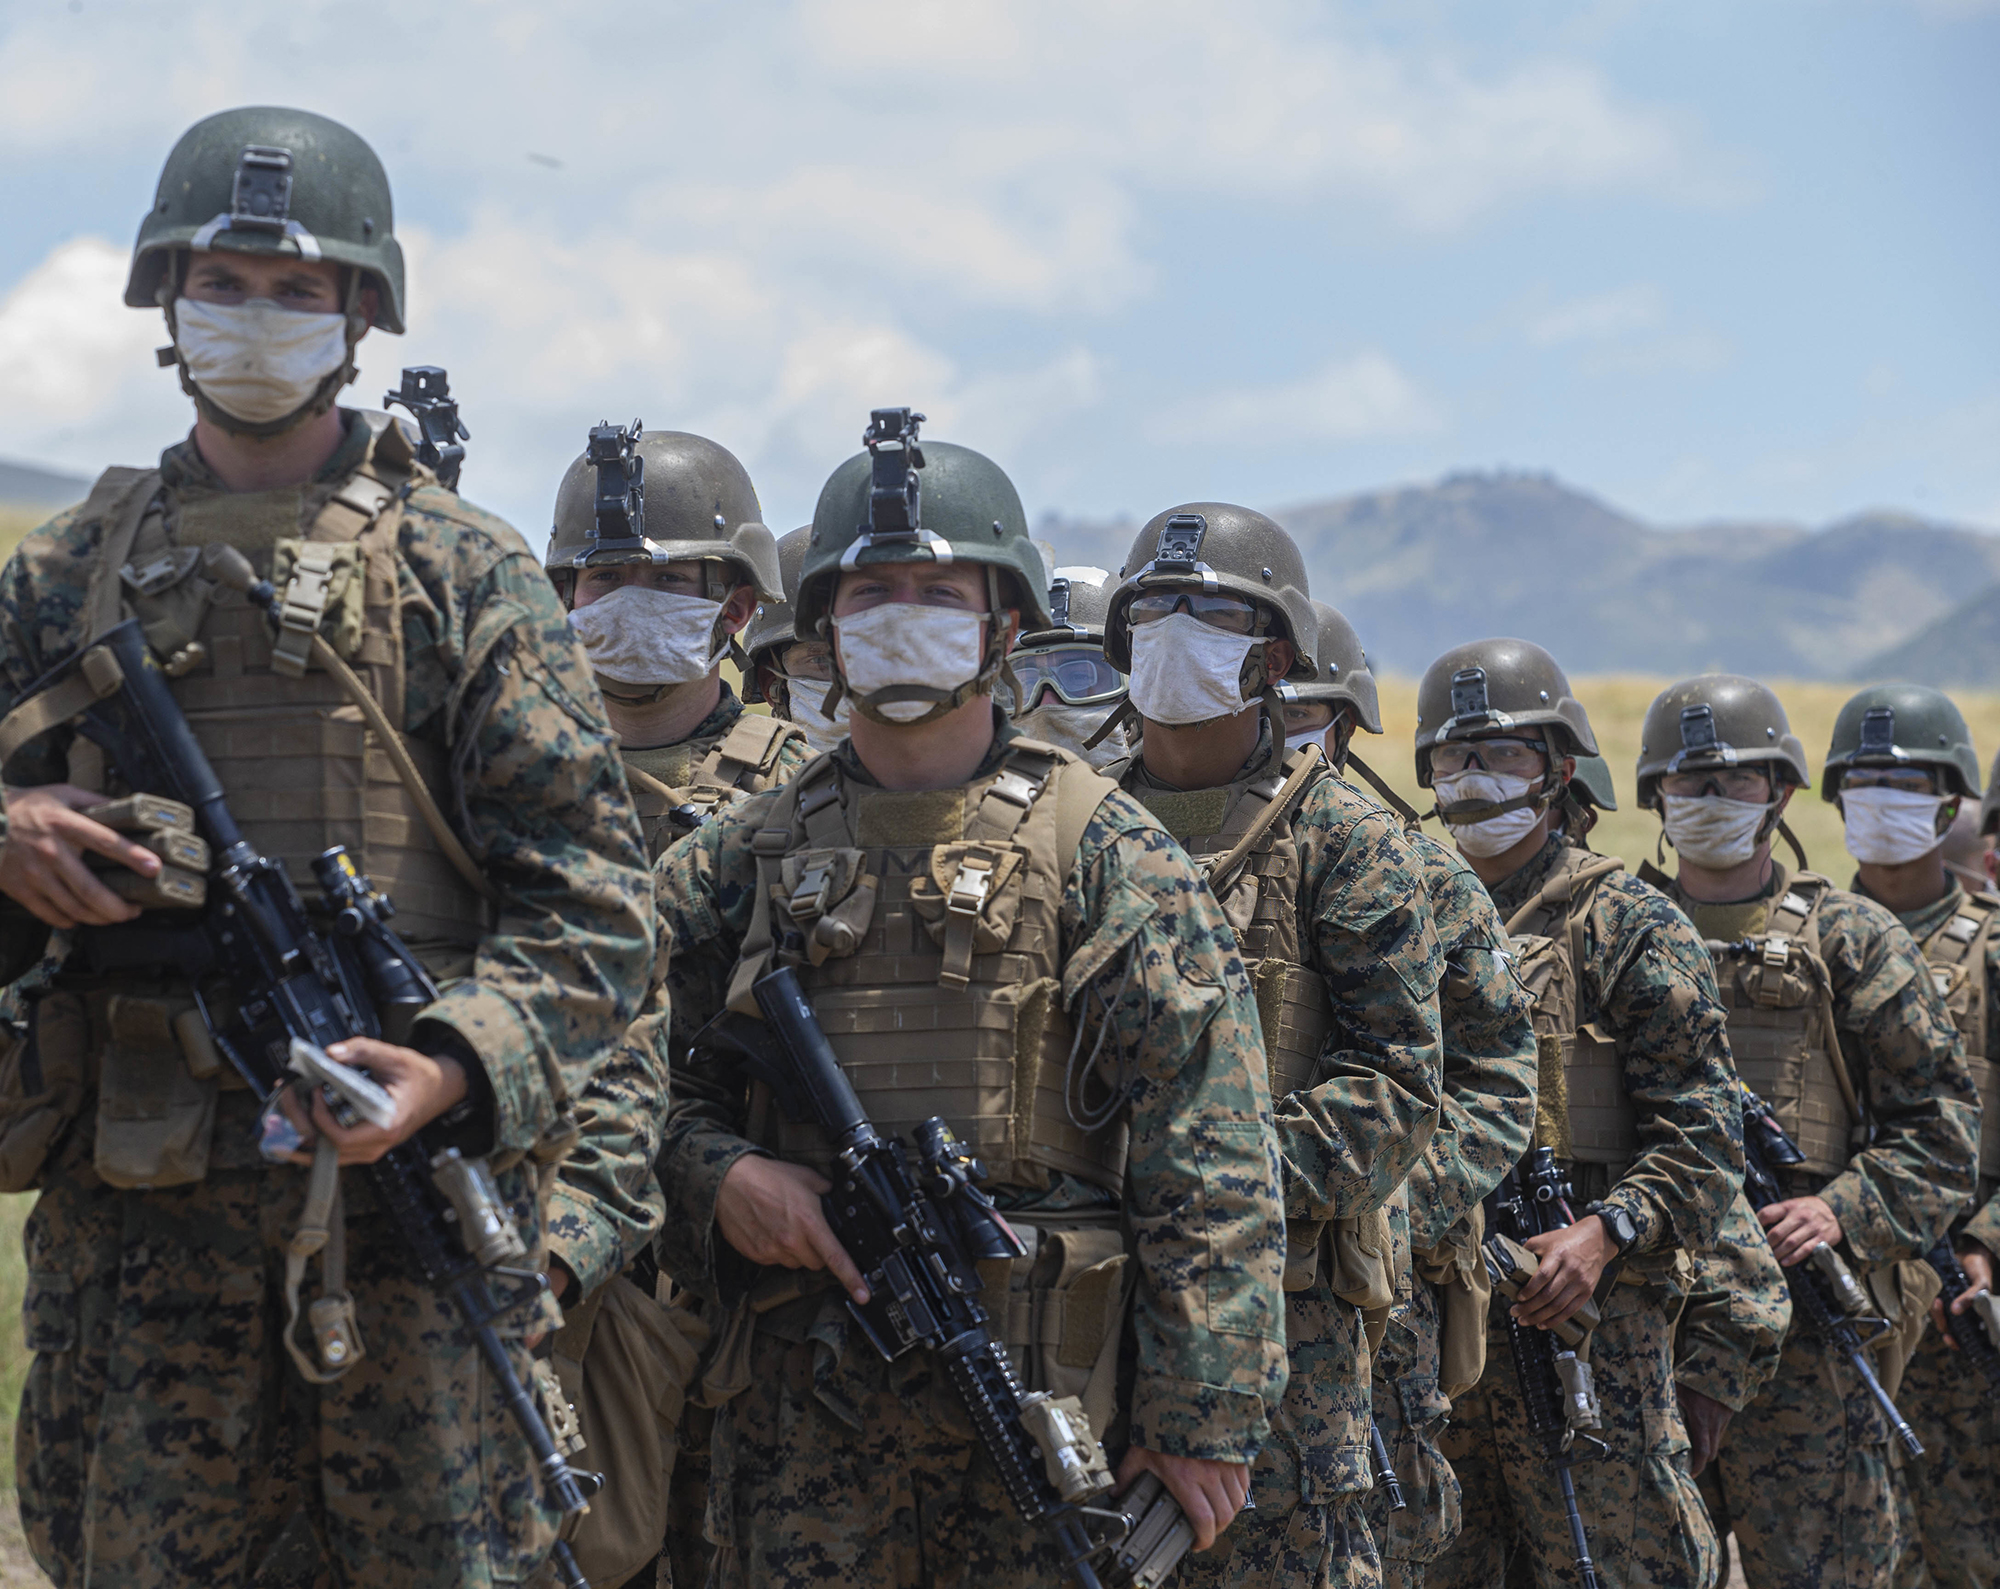 Marines with Alpha Company, Infantry Training Battalion, School of Infantry - West, wait to be lined out after live-fire training on Range 210F on Marine Corps Base Camp Pendleton, Calif., May 12, 2020. (Lance Cpl. Andrew Cortez/Marine Corps)